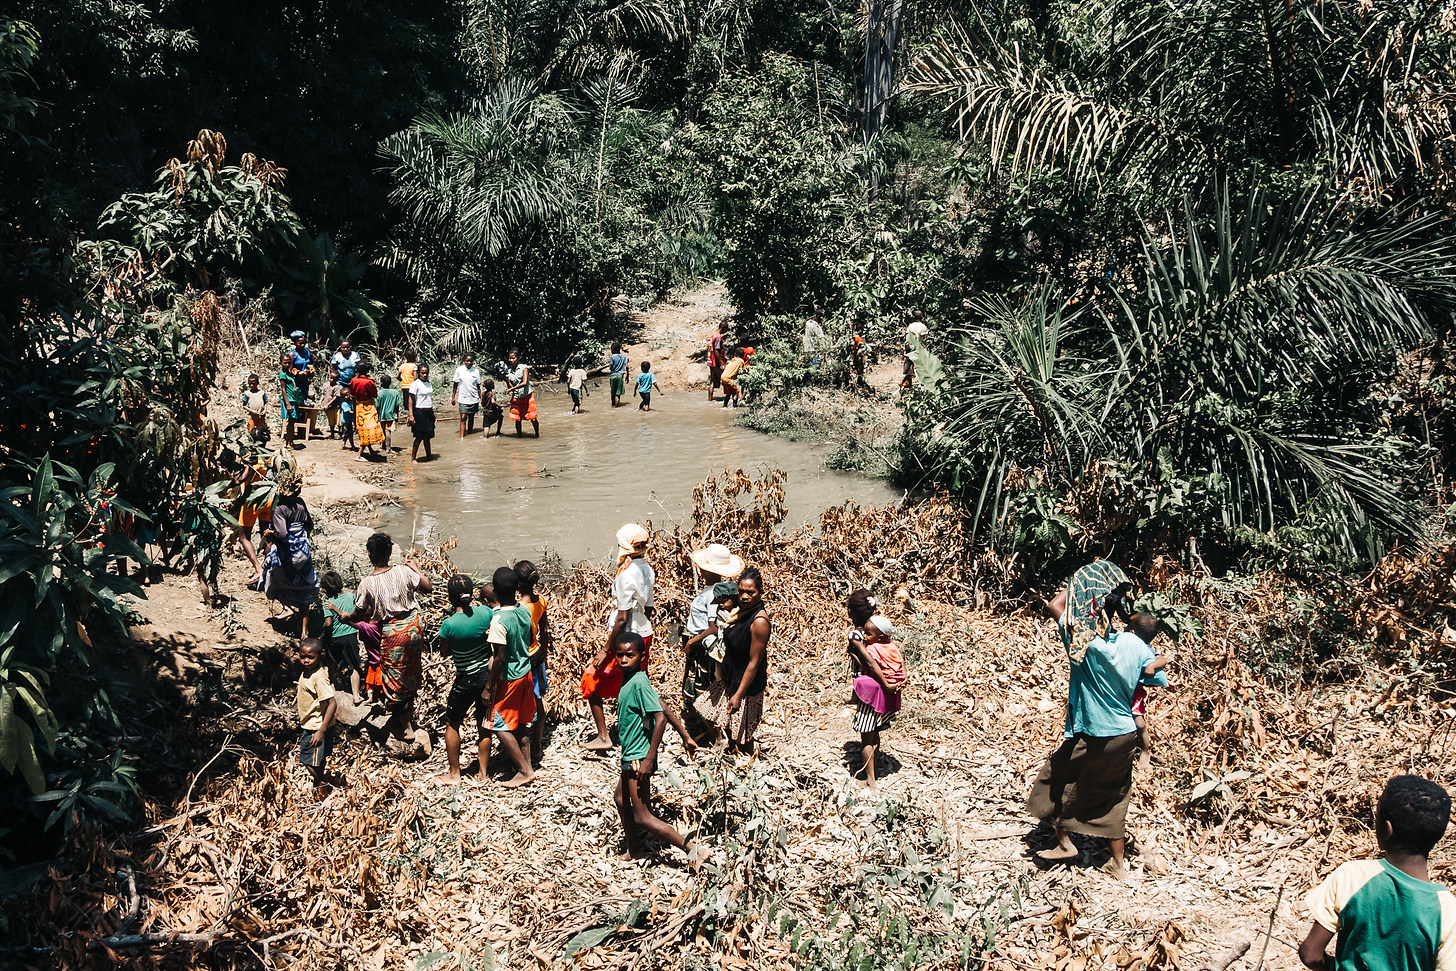 People trekking through river, Madagaskar; Photo: David Vogt